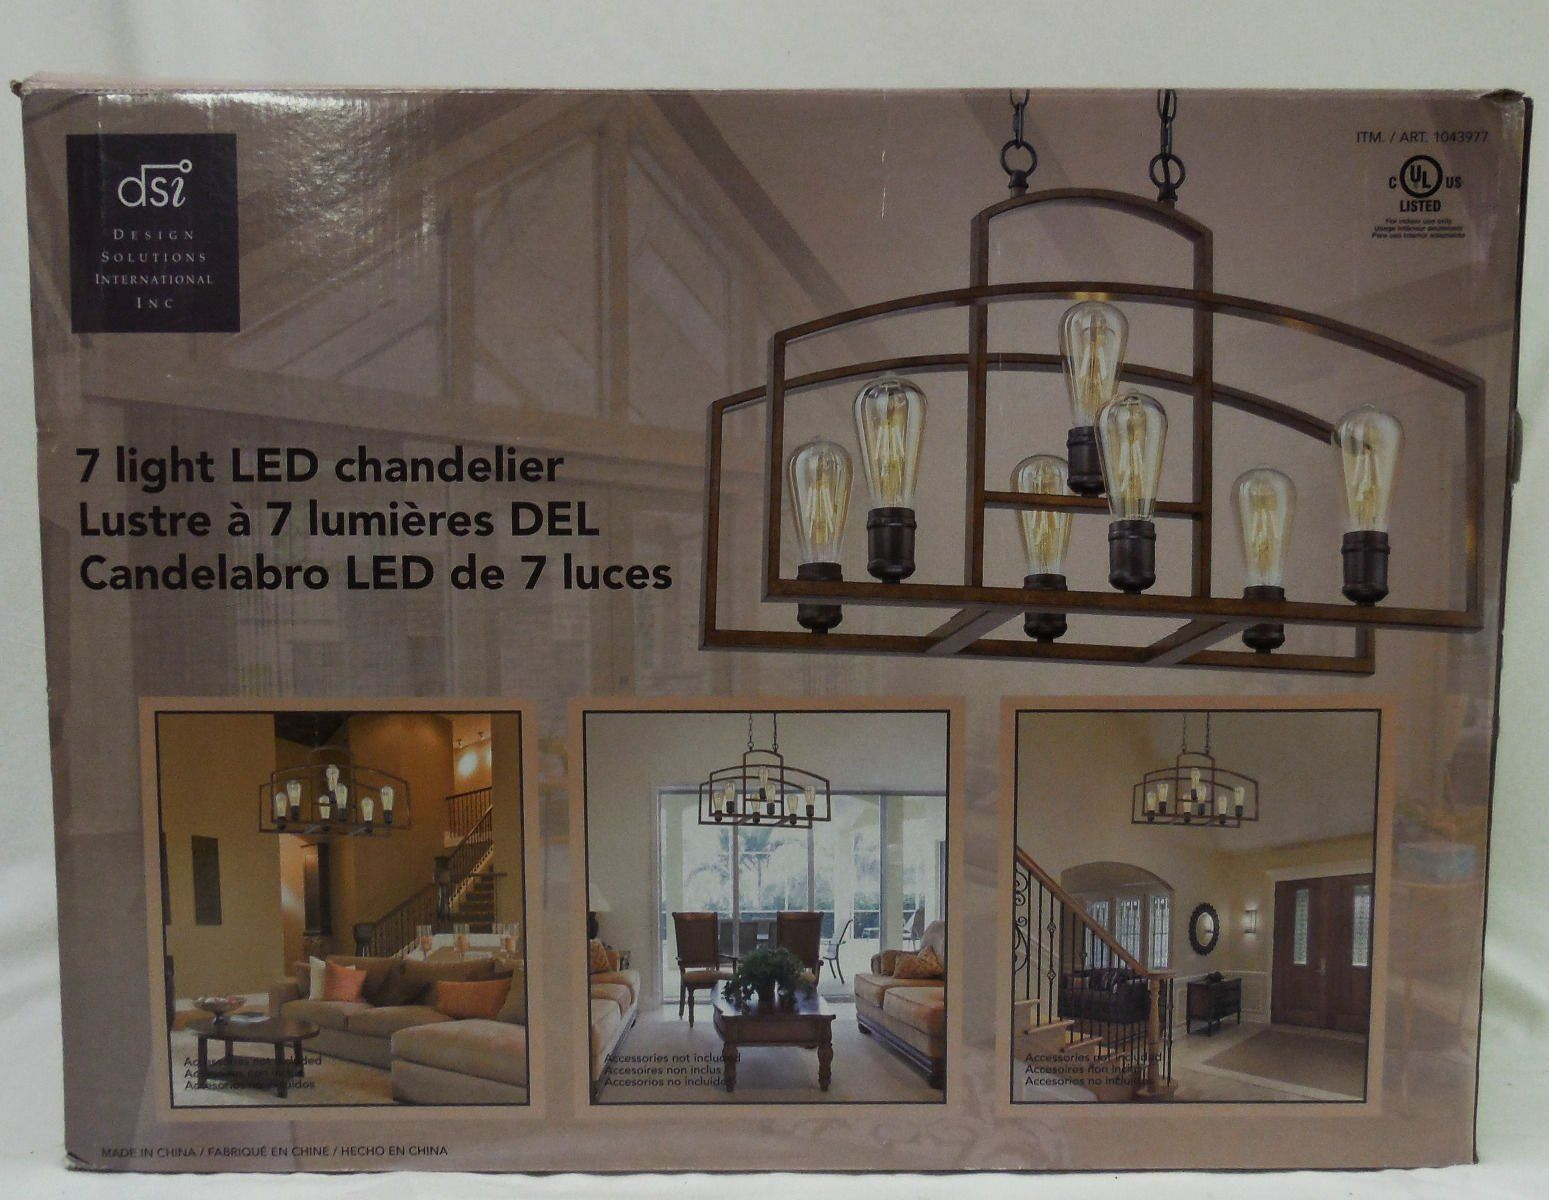 Design Solutions International 7 Edison Light Led Chandelier Want